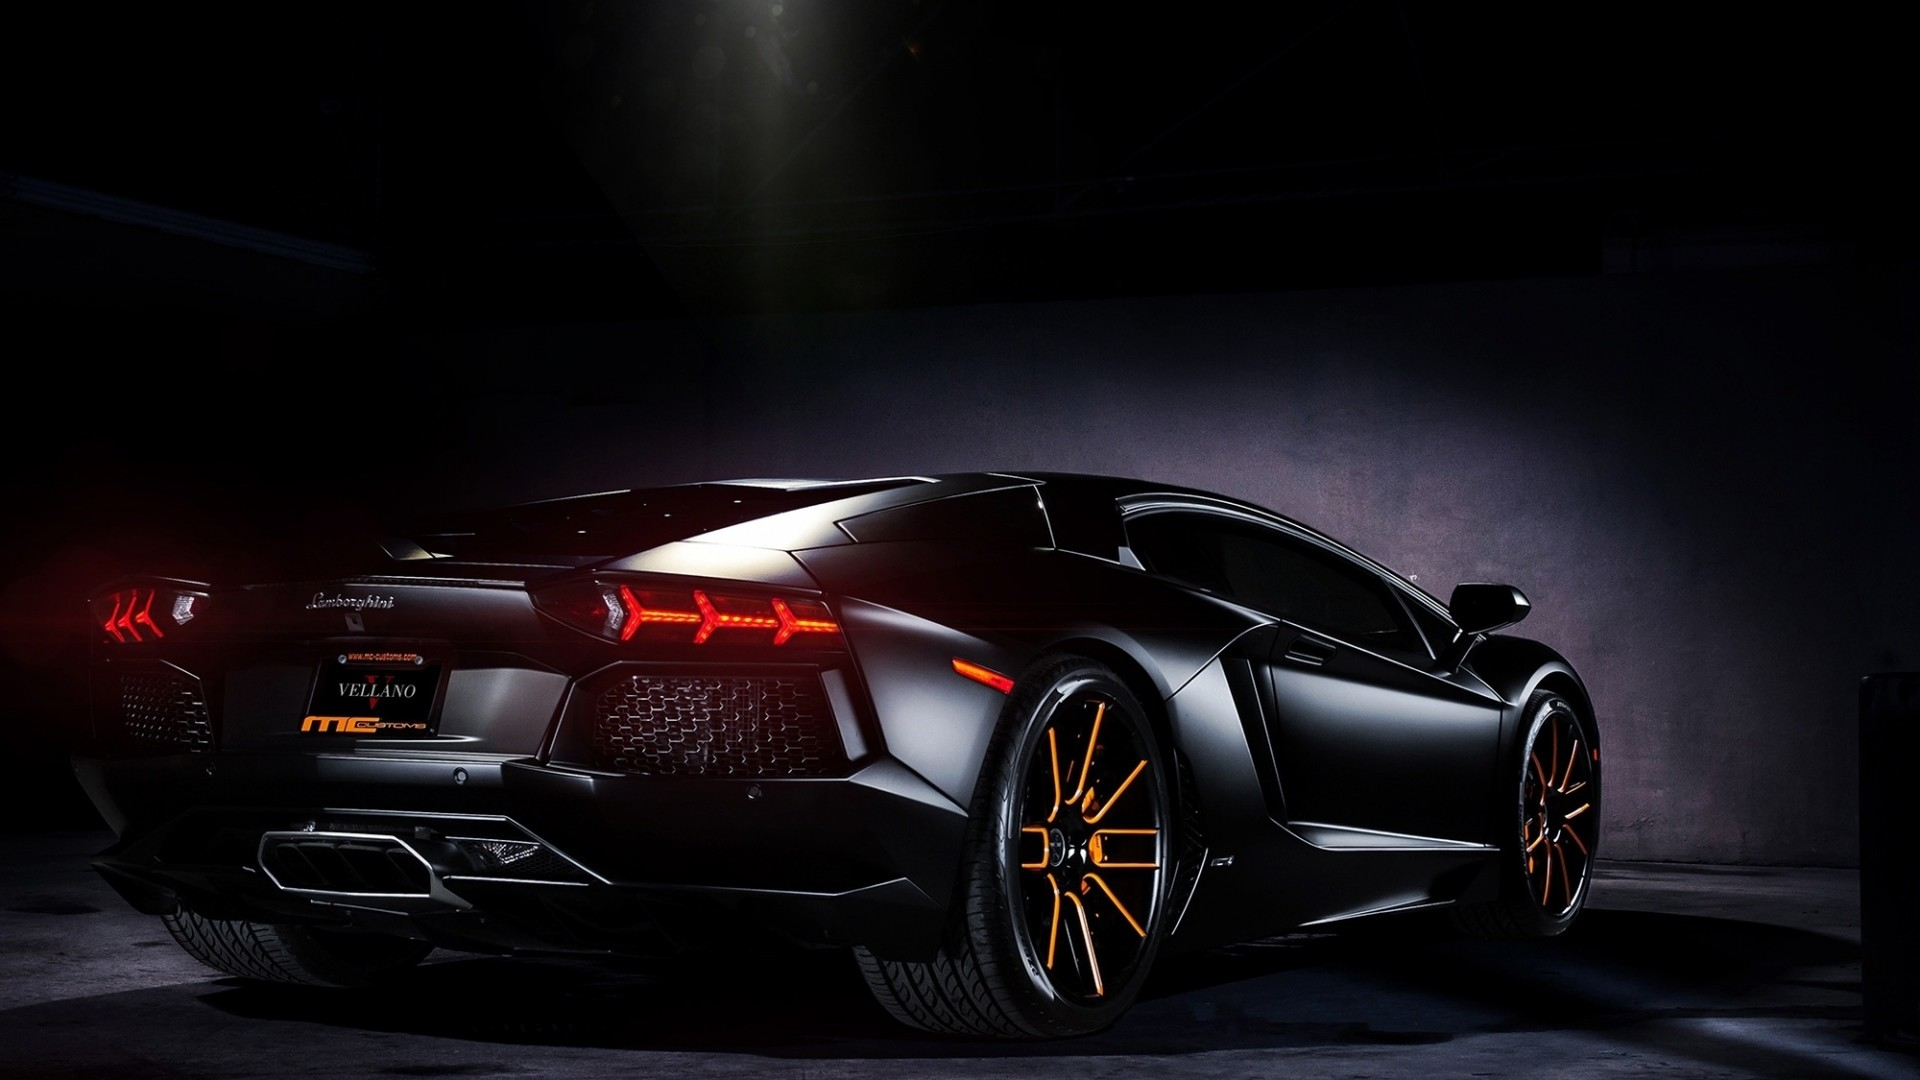 https://www.wallpapers4u.org/wp-content/uploads/nfs_need_for_speed_police_car_road_16145_1920x1080.jpg    dream come with ferrari   Pinterest   Car wallpapers …